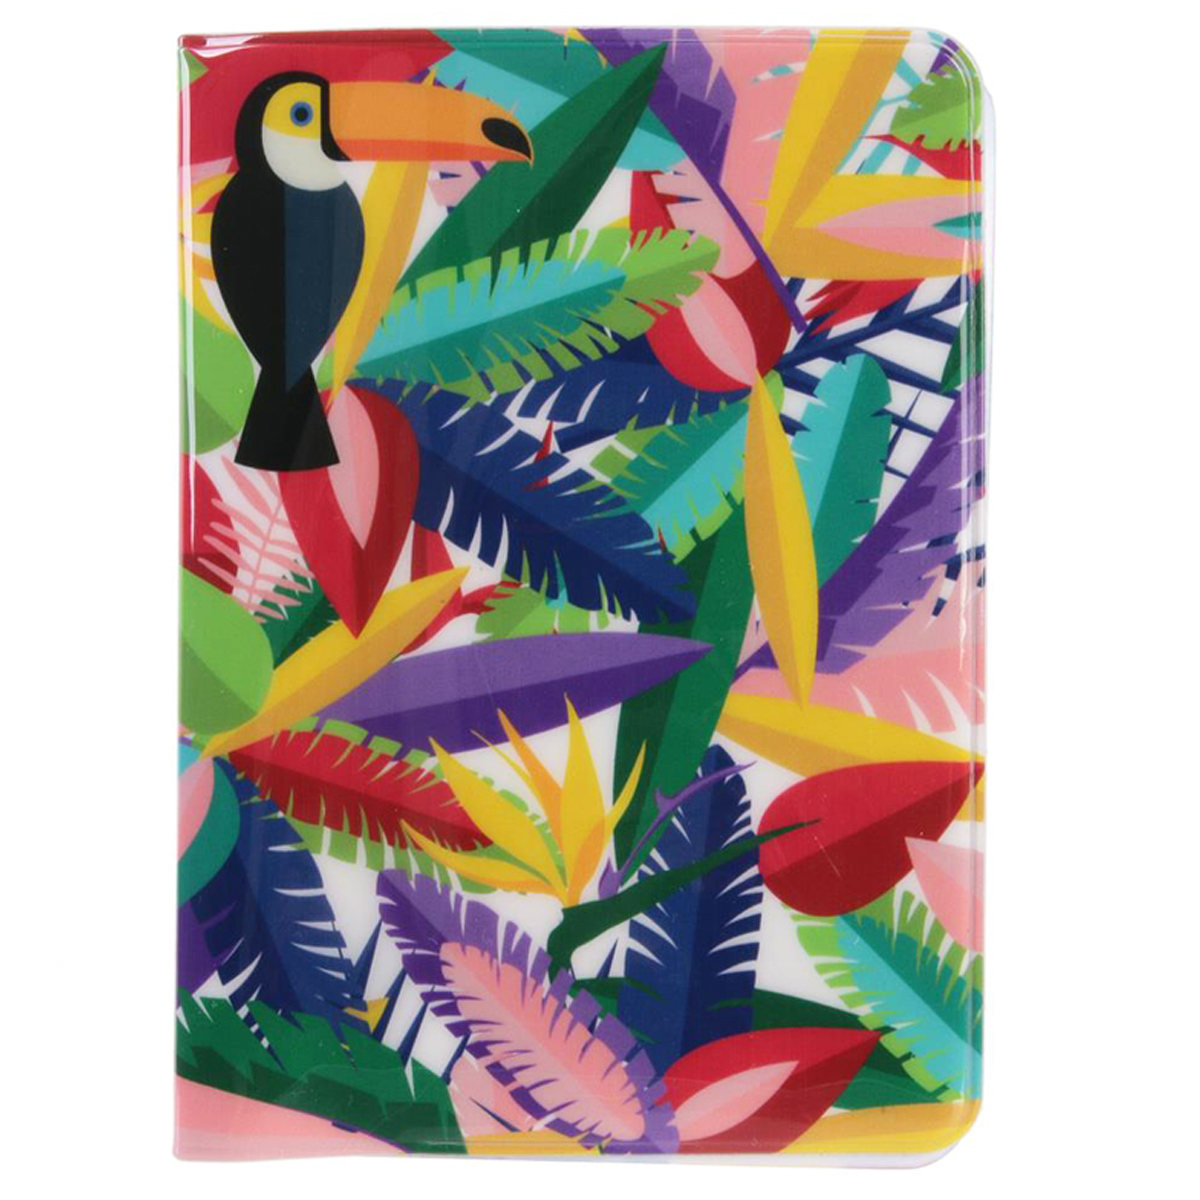 Etui passeport \'Tropical\' multicolore (toucan) - 14x10 cm - [Q7793]